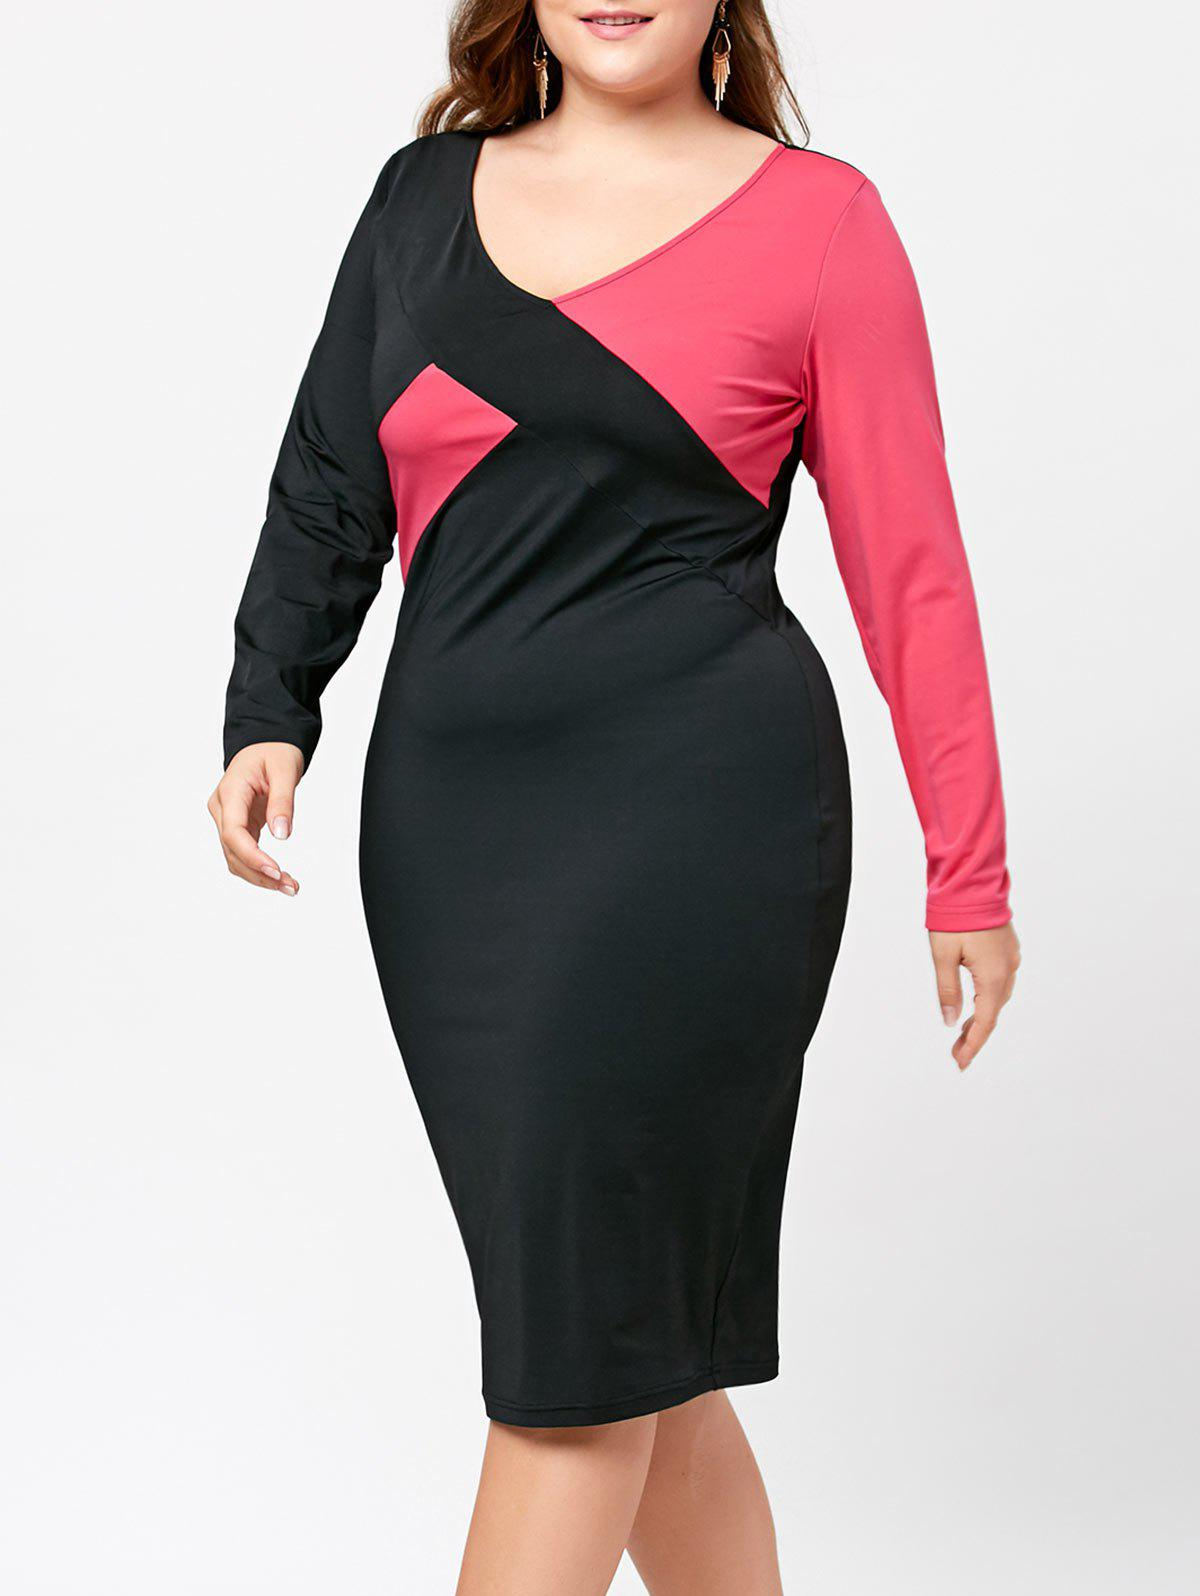 V-neck Color Block Plus Size Sheath DressWOMEN<br><br>Size: 5XL; Color: BLACK + ROSE; Style: Brief; Material: Polyester,Spandex; Silhouette: Sheath; Dresses Length: Knee-Length; Neckline: V-Neck; Sleeve Length: Long Sleeves; Pattern Type: Others; With Belt: No; Season: Fall,Spring; Weight: 0.3400kg; Package Contents: 1 x Dress;